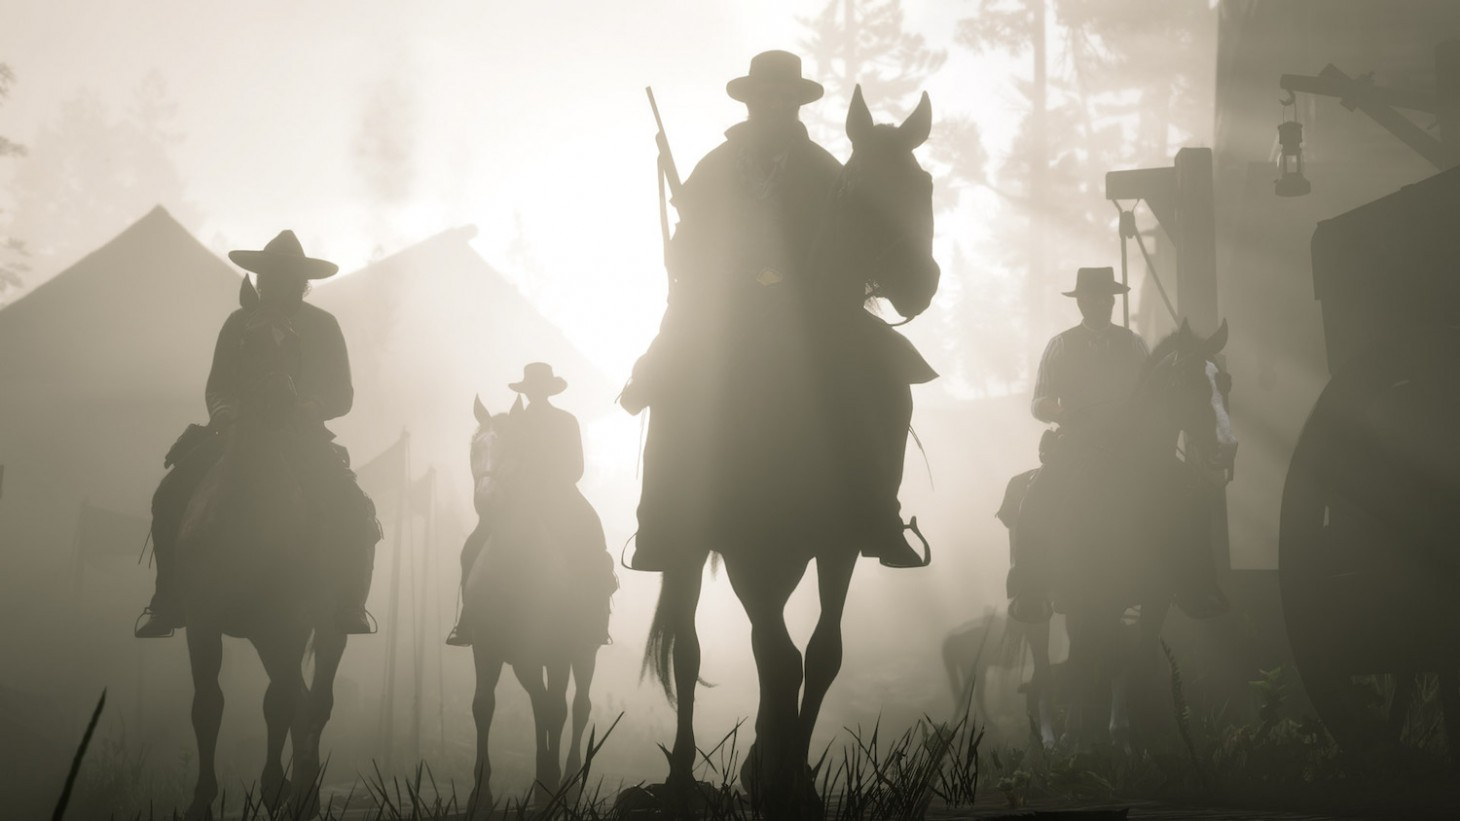 10 Unsolved Mysteries In Red Dead Redemption 2 - Game Informer